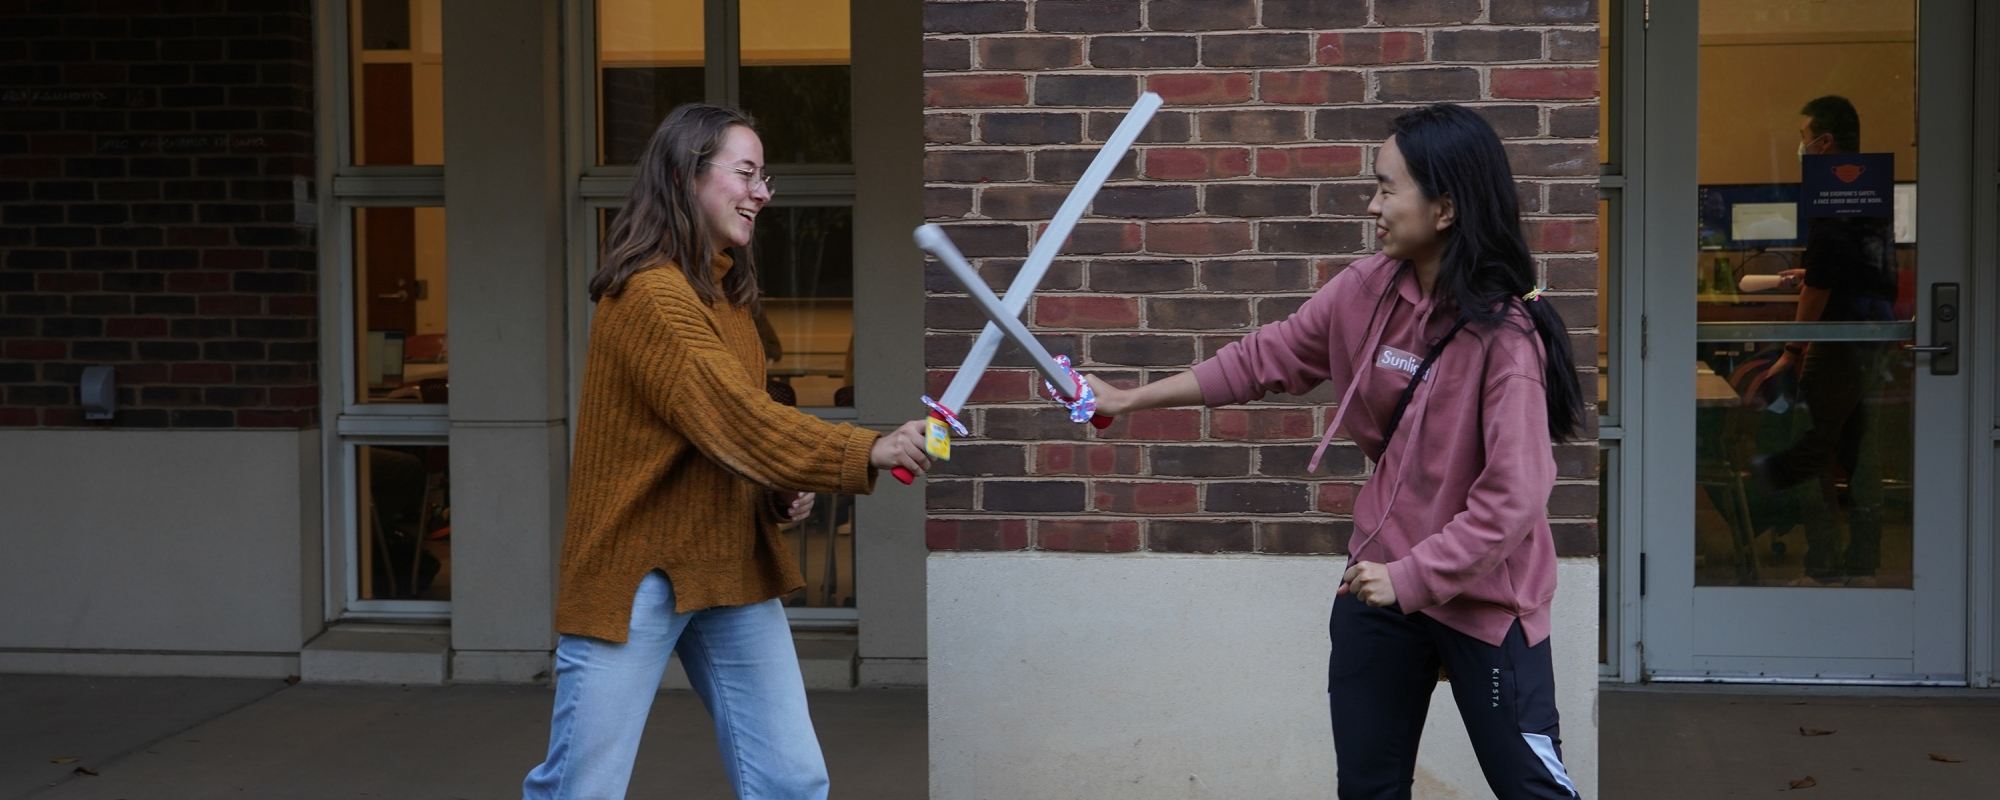 Aramark Ohill employee Talaso Haji with VISAS Workplace intern '19 Elma Adusei. Photo Credit: Andrew Walsh with UVA Spin